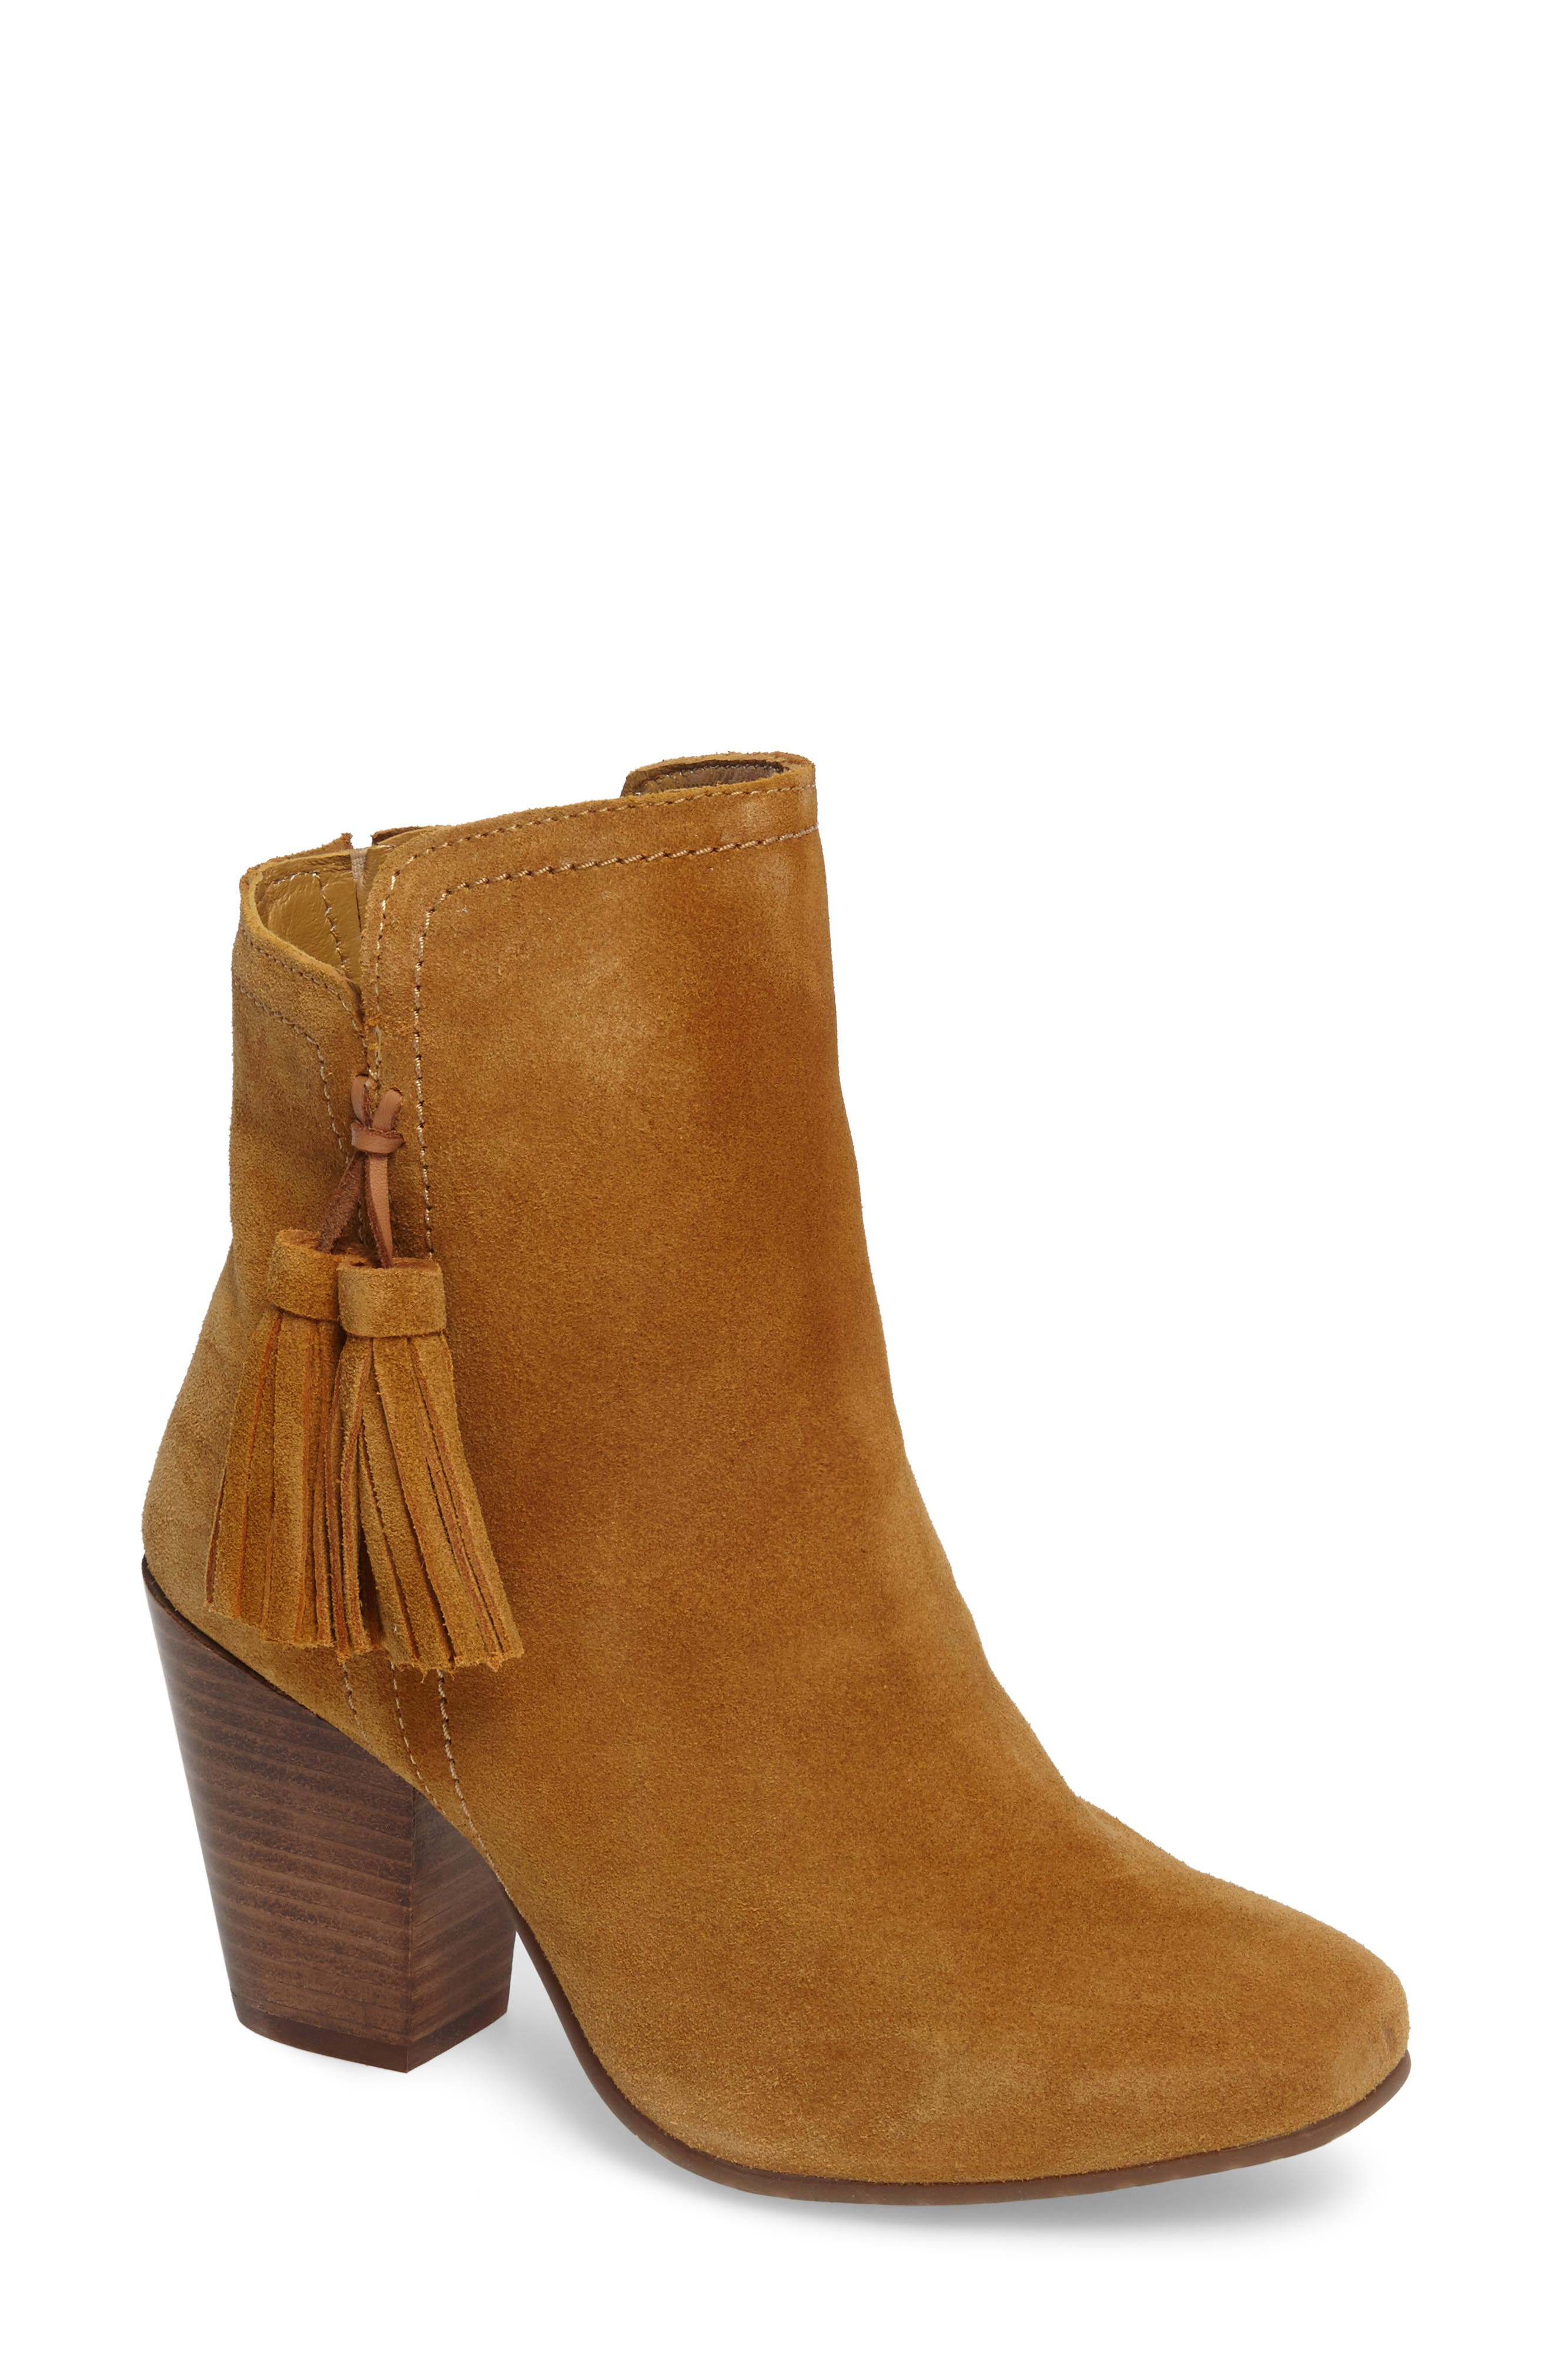 Daisee Billie Bootie,                             Main thumbnail 1, color,                             Camel Suede